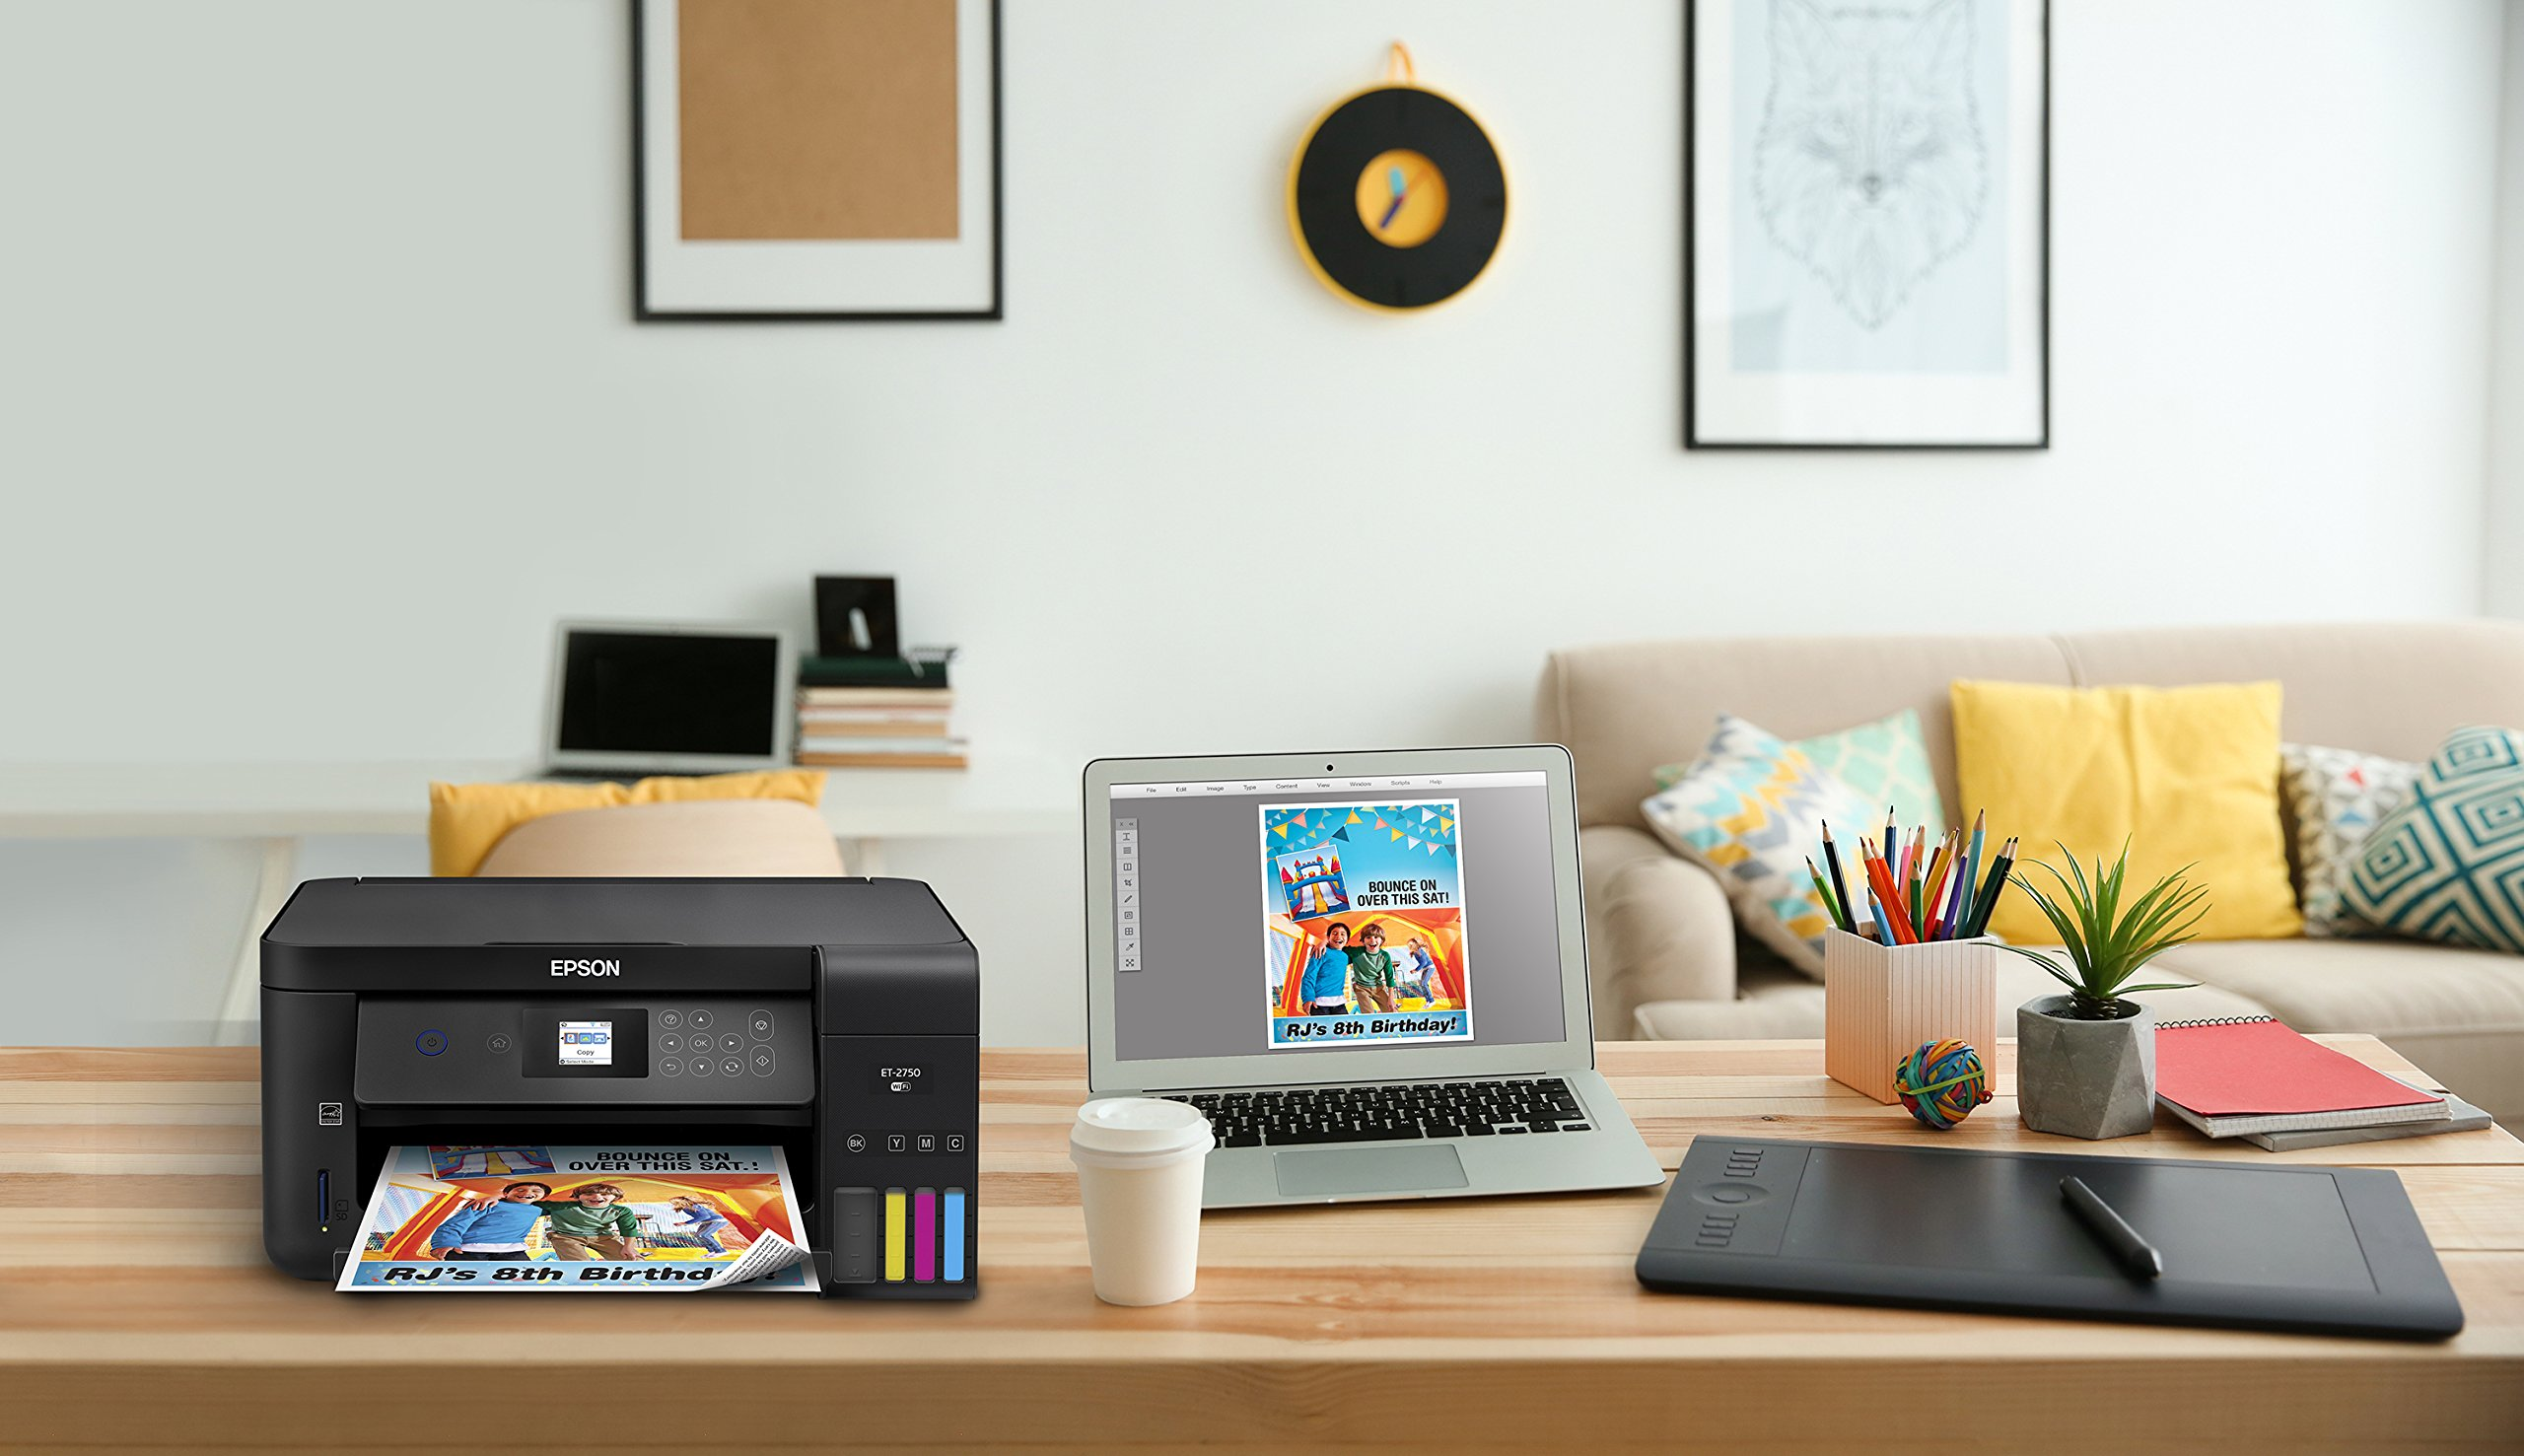 Epson Expression ET-2750 EcoTank Wireless Color All-in-One Supertank Printer with Scanner and Copier by Epson (Image #5)